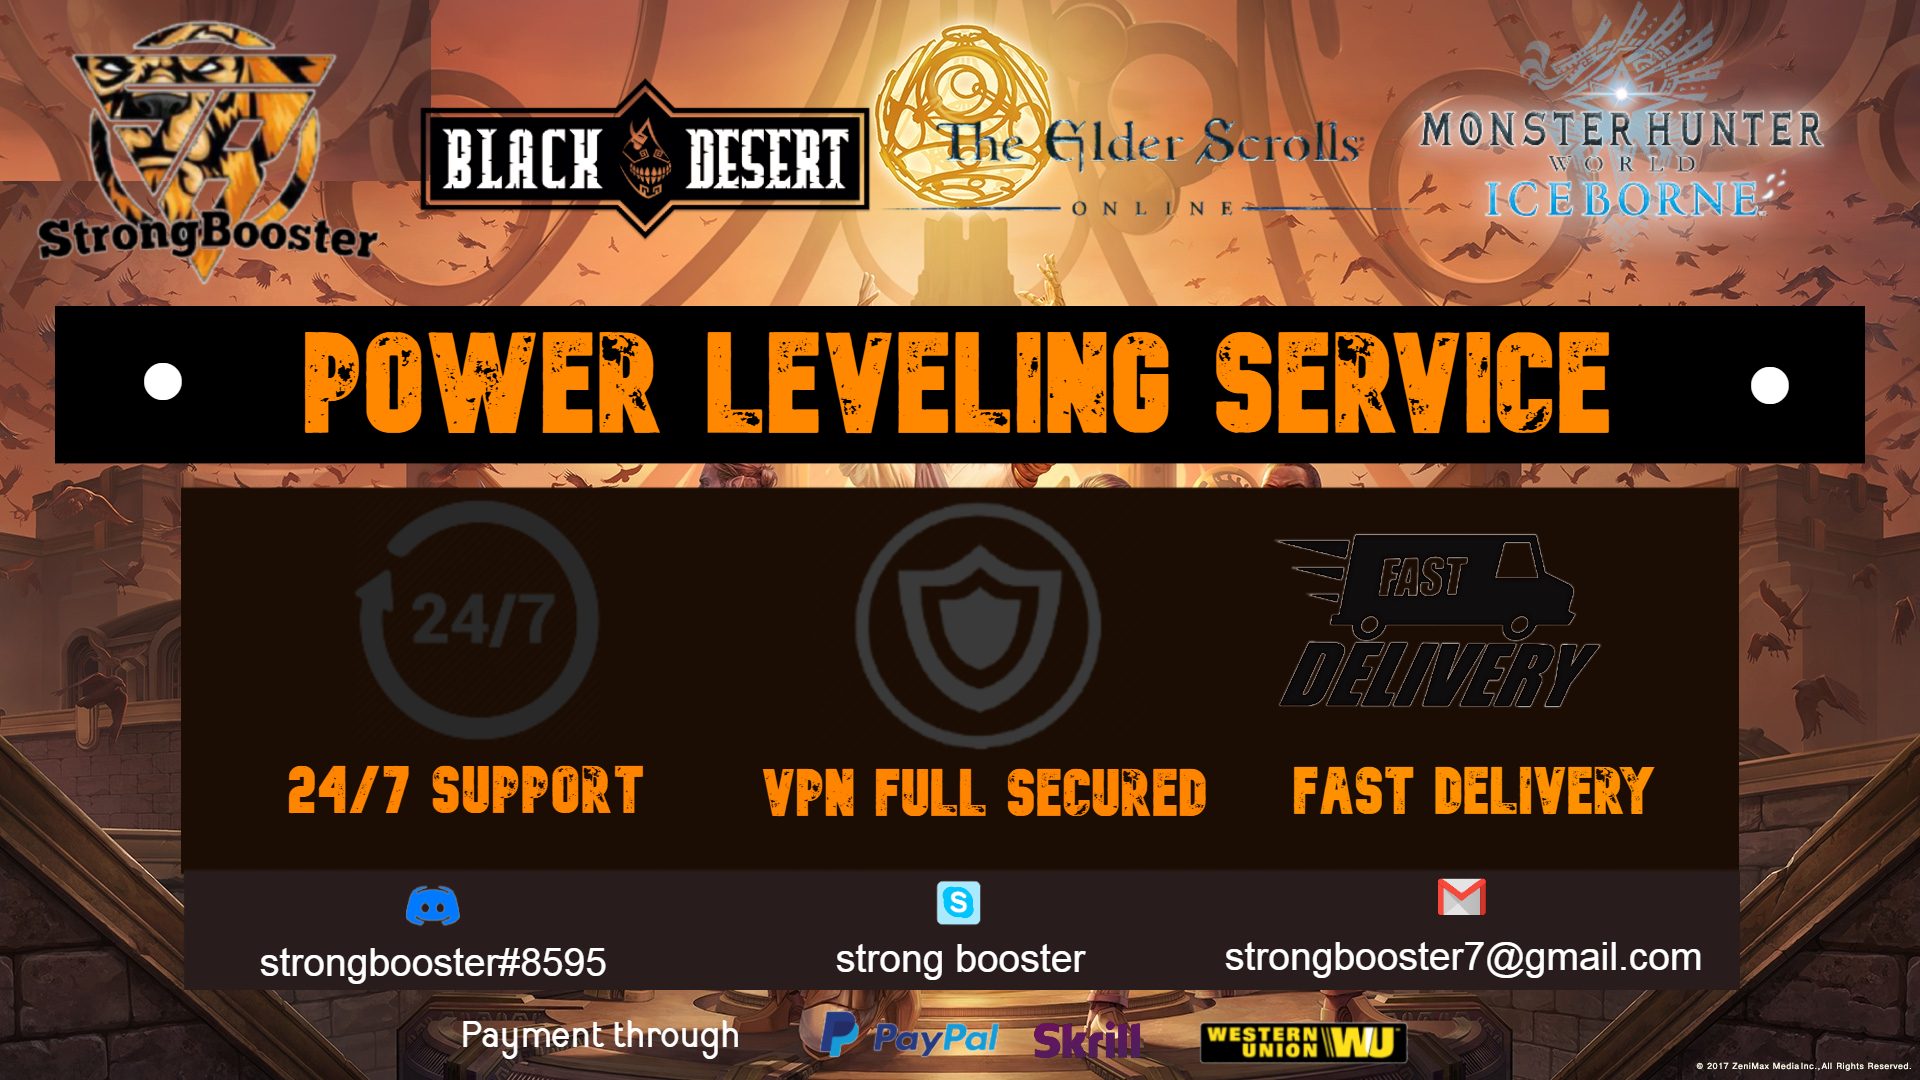 All Server WOW Clssic Power Leveling Service 1-60 all done by Hand with full VPN Secured 100% Safety